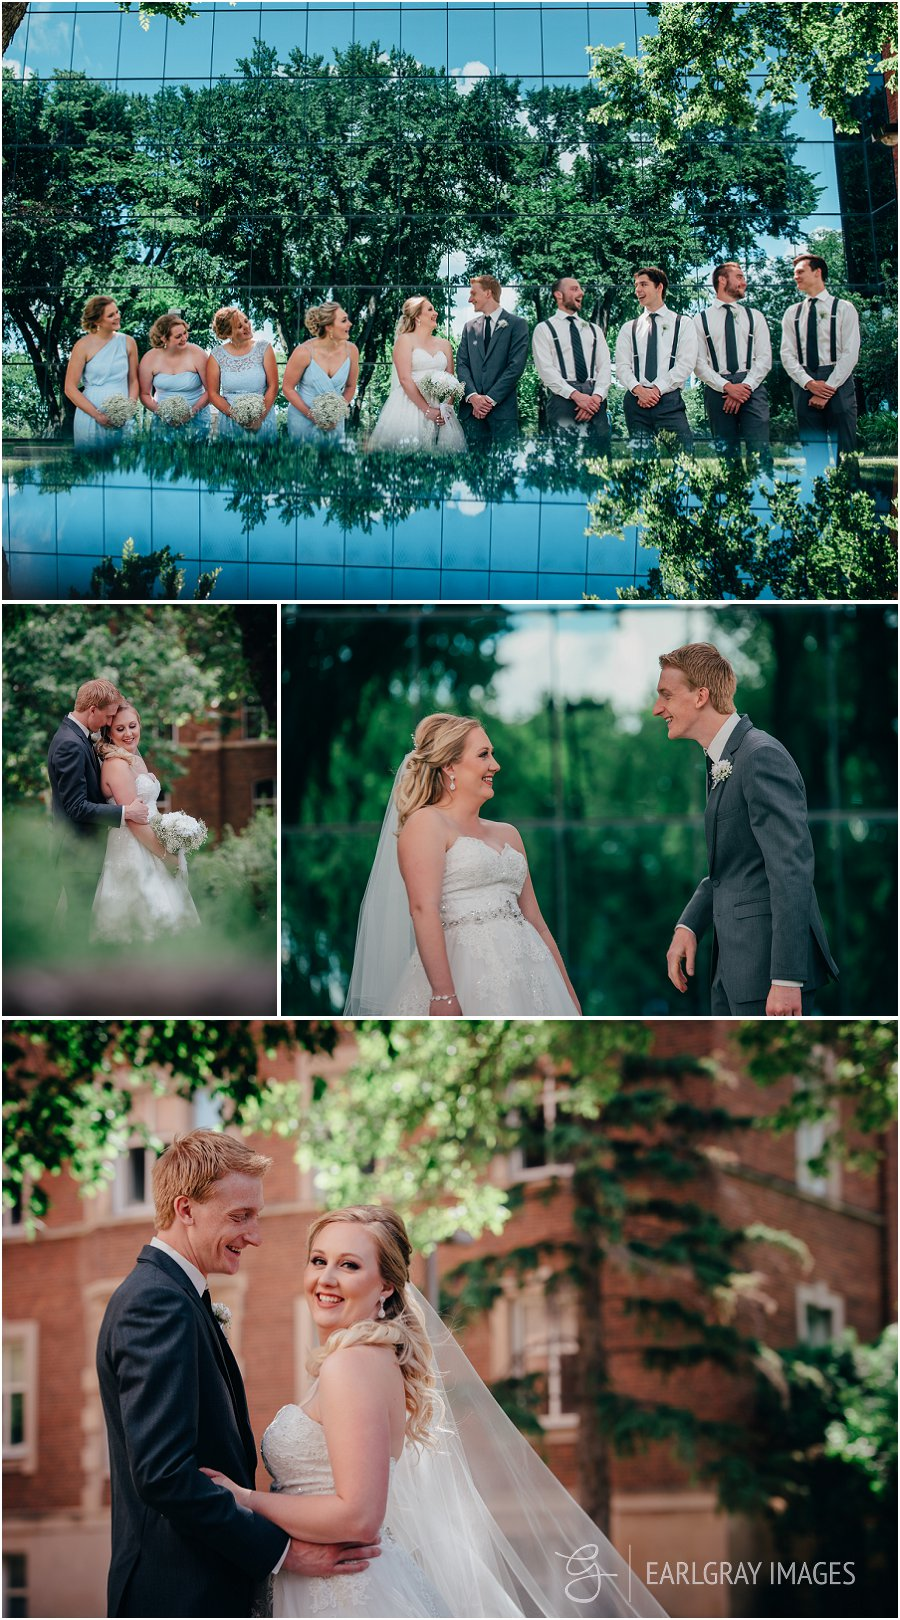 University of Alberta Wedding, Edmonton Wedding